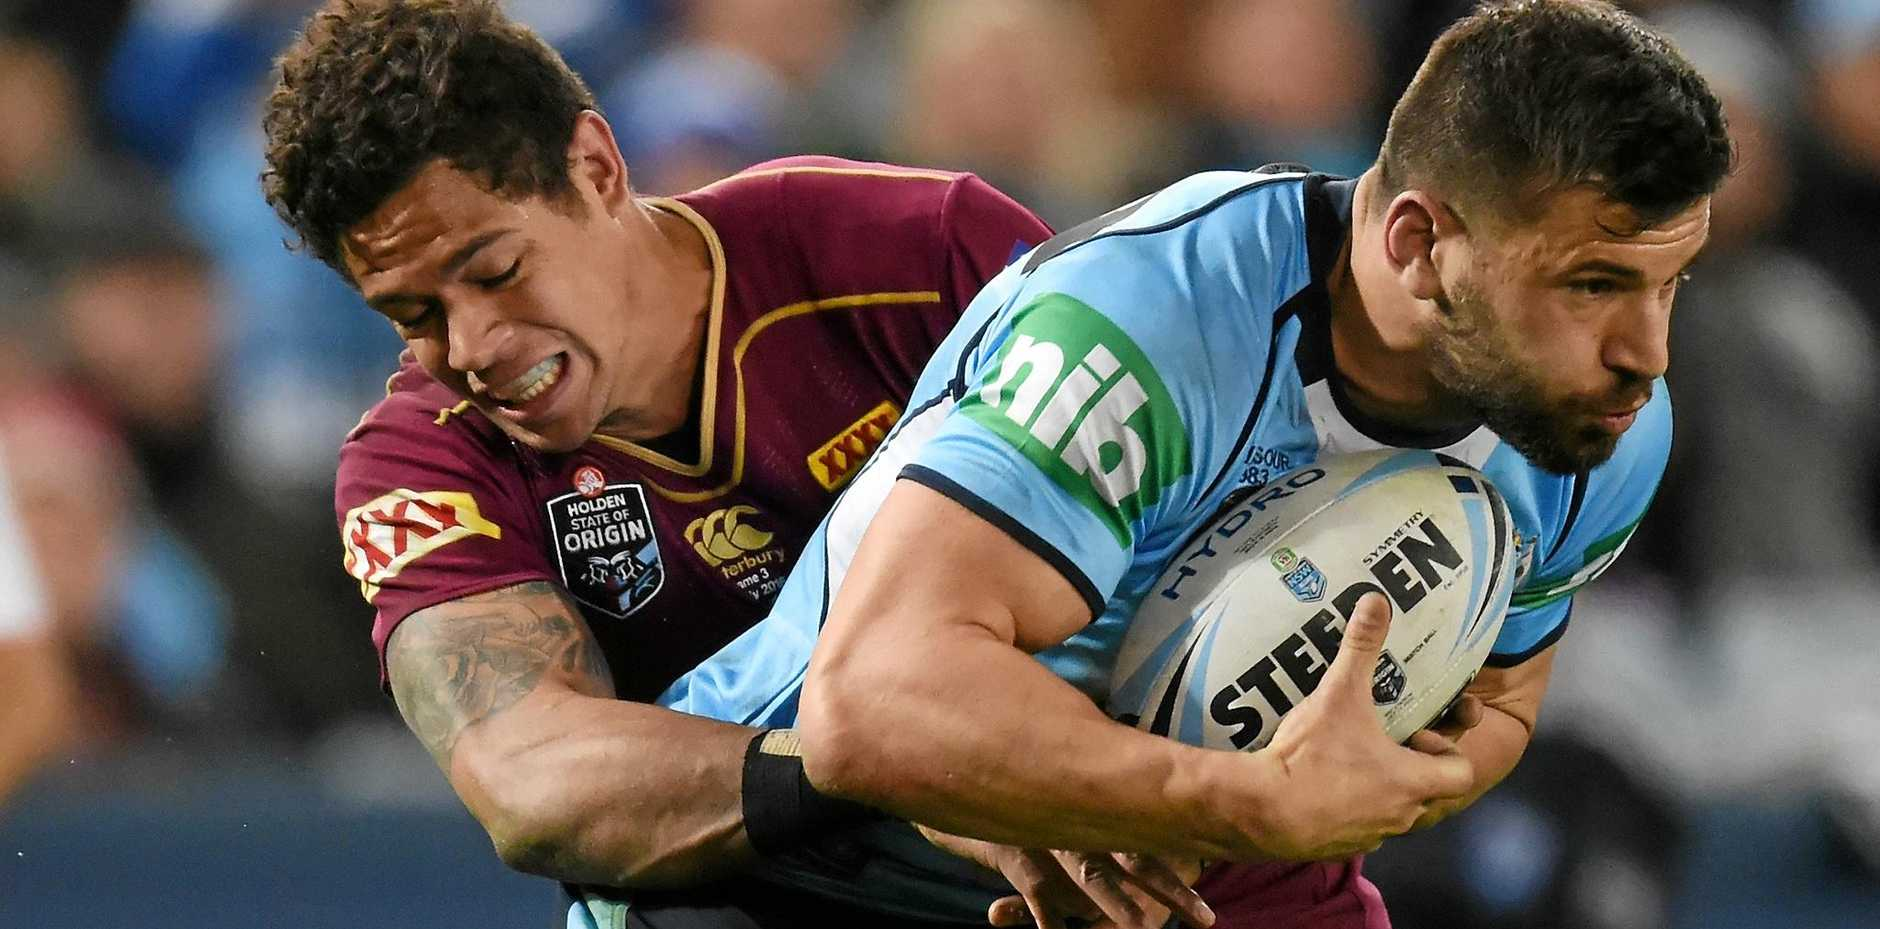 TOUGH ENCOUNTER: New South Wales Blues fullback James Tedesco is tackled by Queensland Maroons winger Dane Gagai.